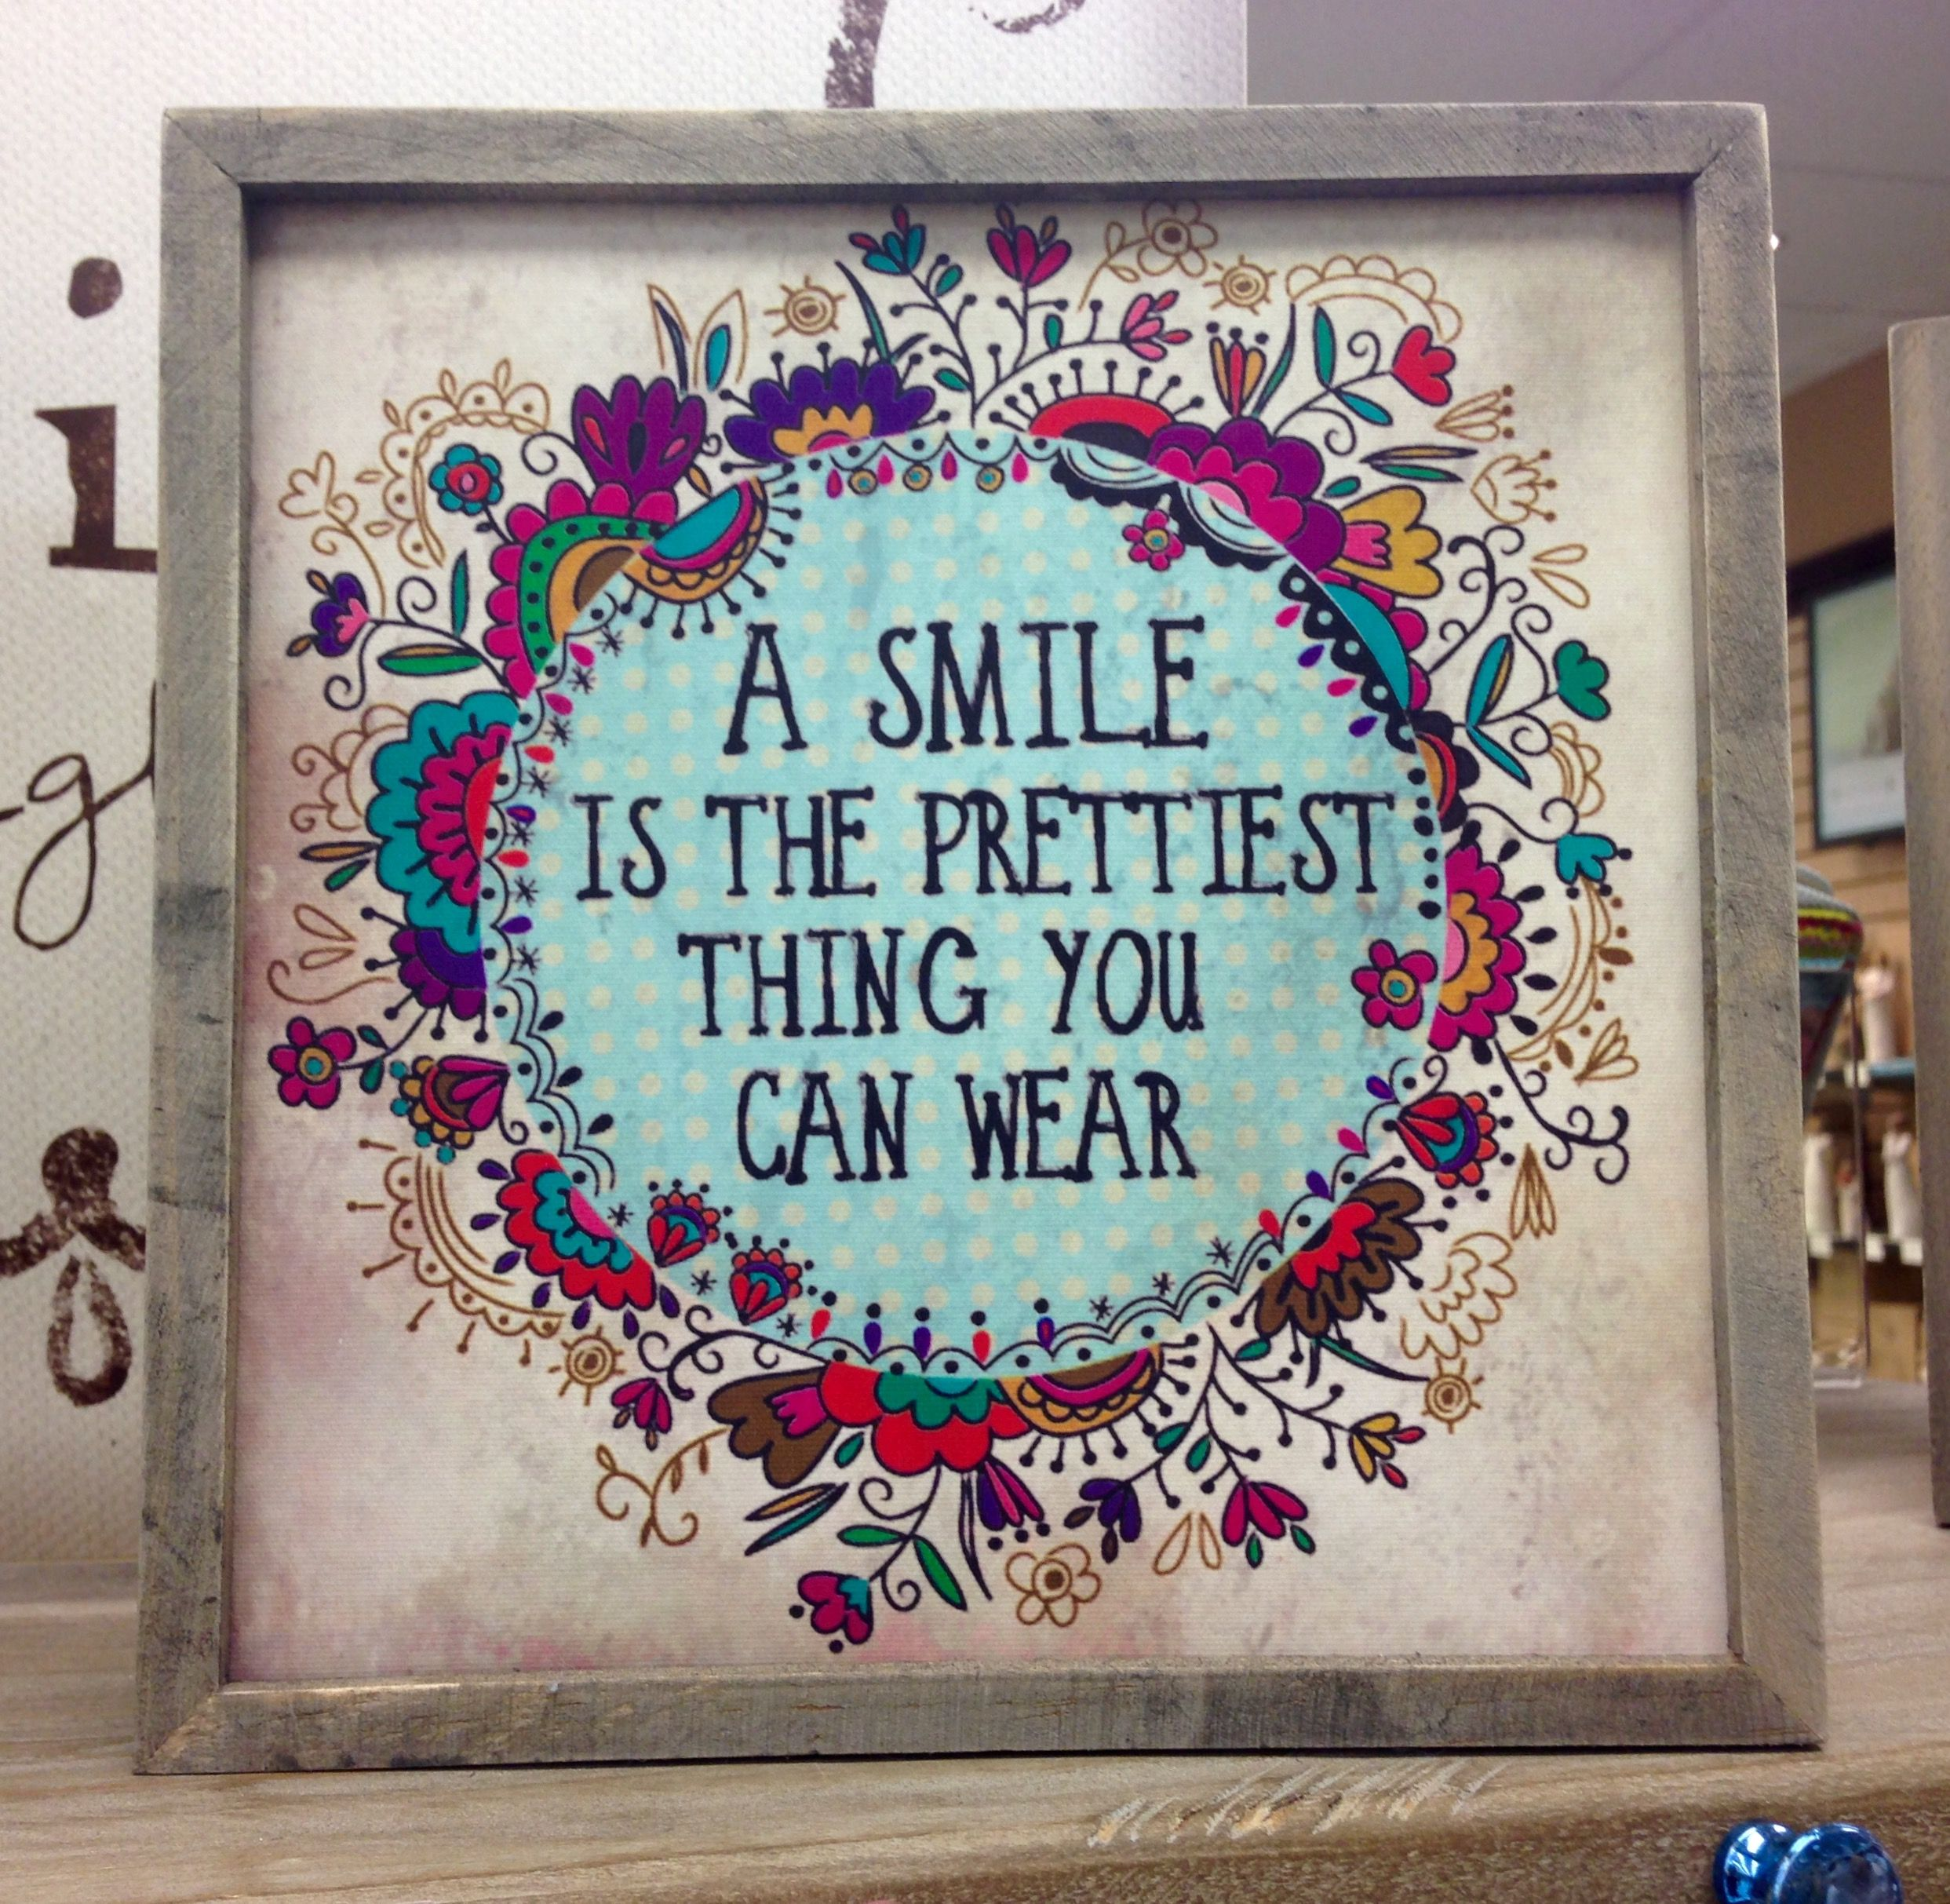 A Smile Is The Prettiest Thing You Can Wear Framed Print Mardel Stretched Canvas Wall Art Natural Life Framed Canvas Wall Art